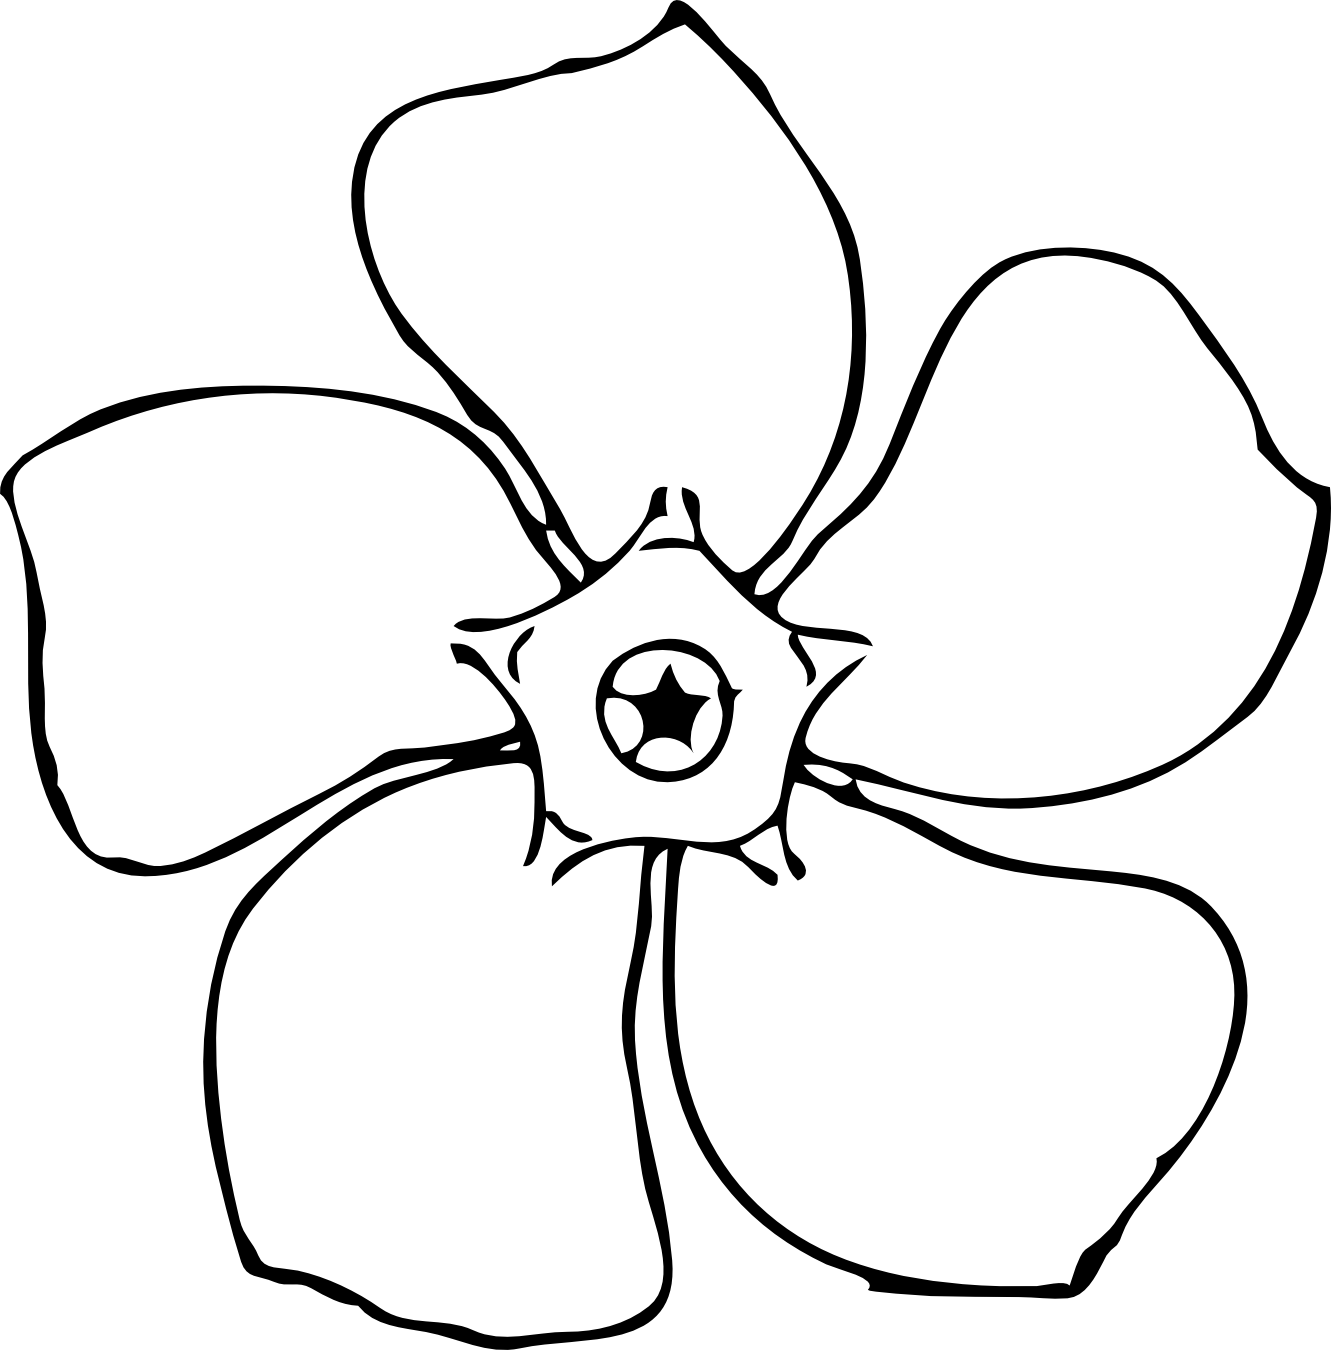 Flower clipart with roots svg library library Clipart Spring Flowers Black And White | Clipart Panda - Free ... svg library library